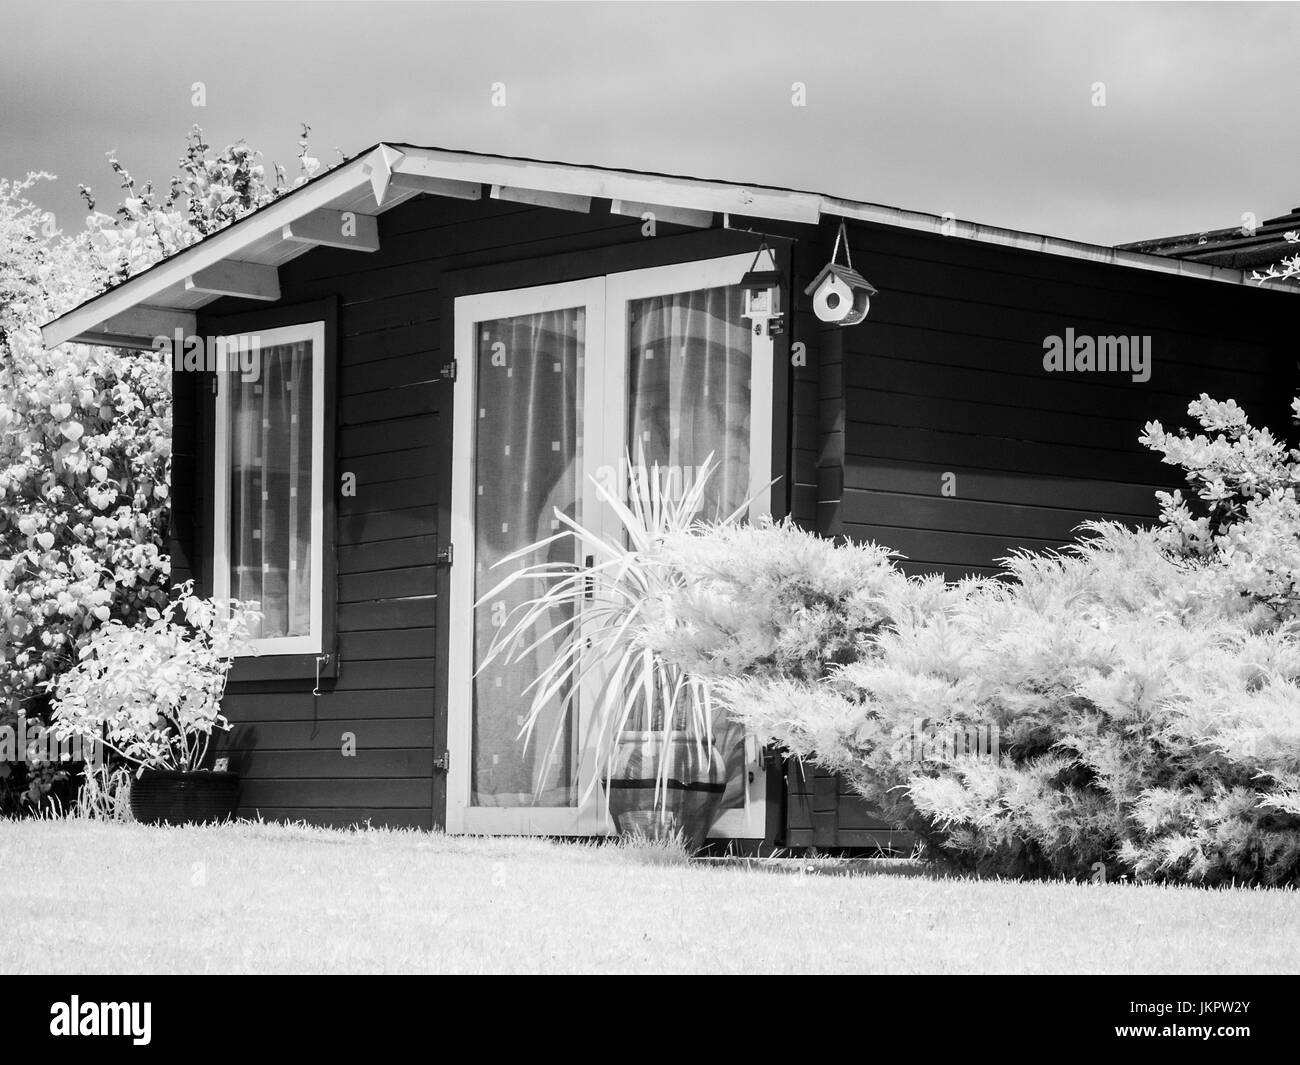 A chalet style wooden garden shed taken on an infrared converted camera. - Stock Image